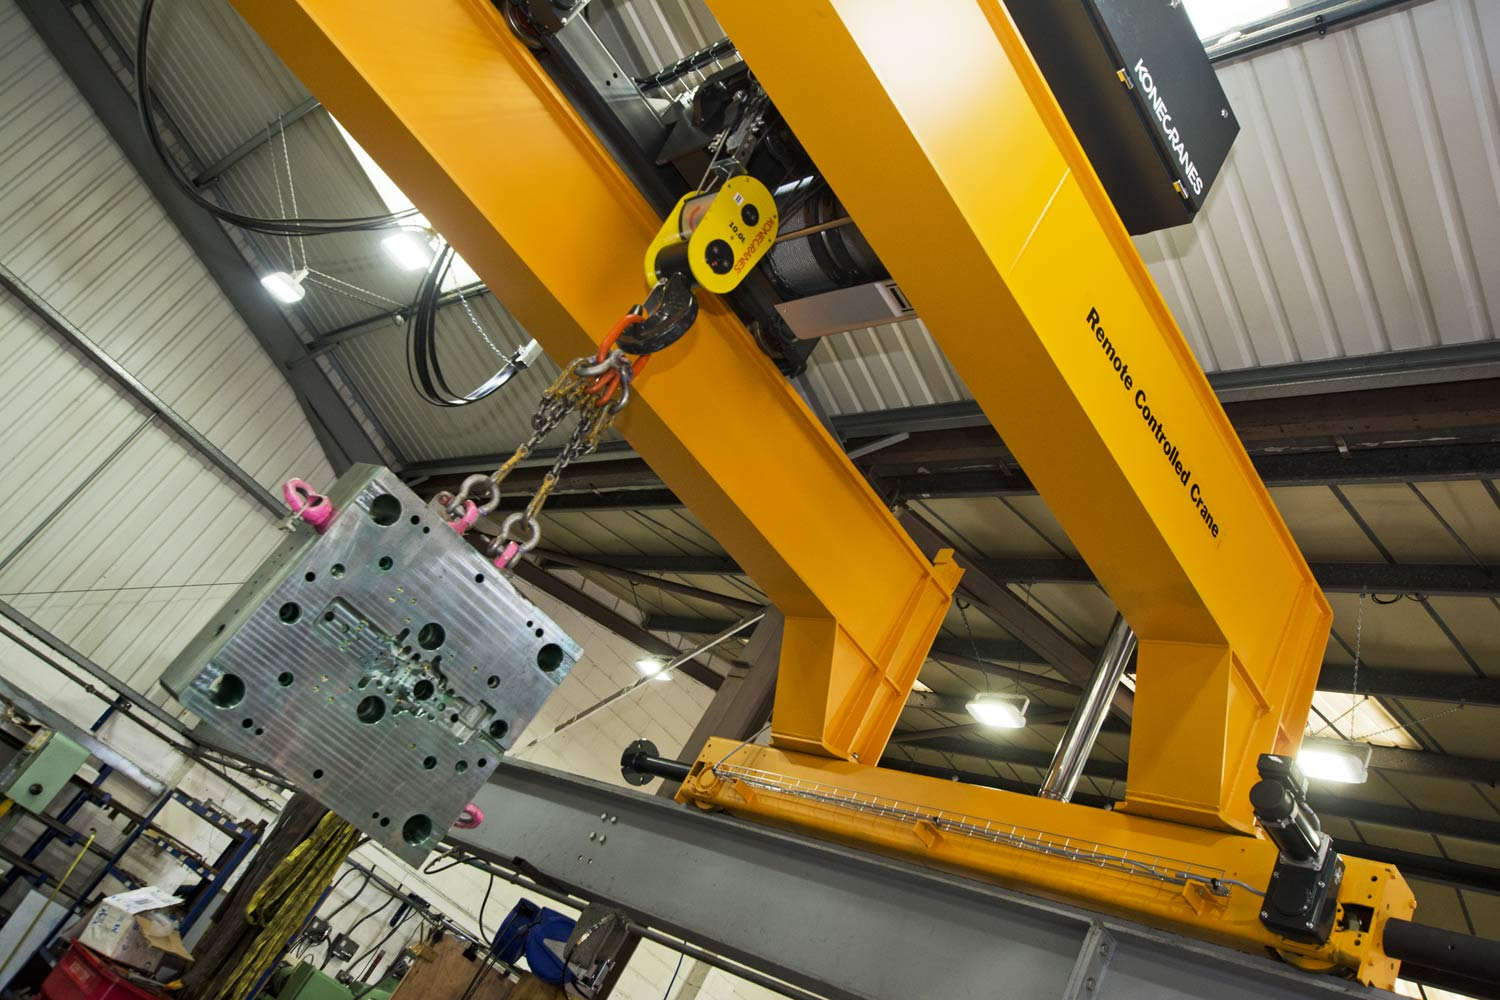 TWIN CRANE CARRIAGE FACILITY BY C&M MOULD TOOLS